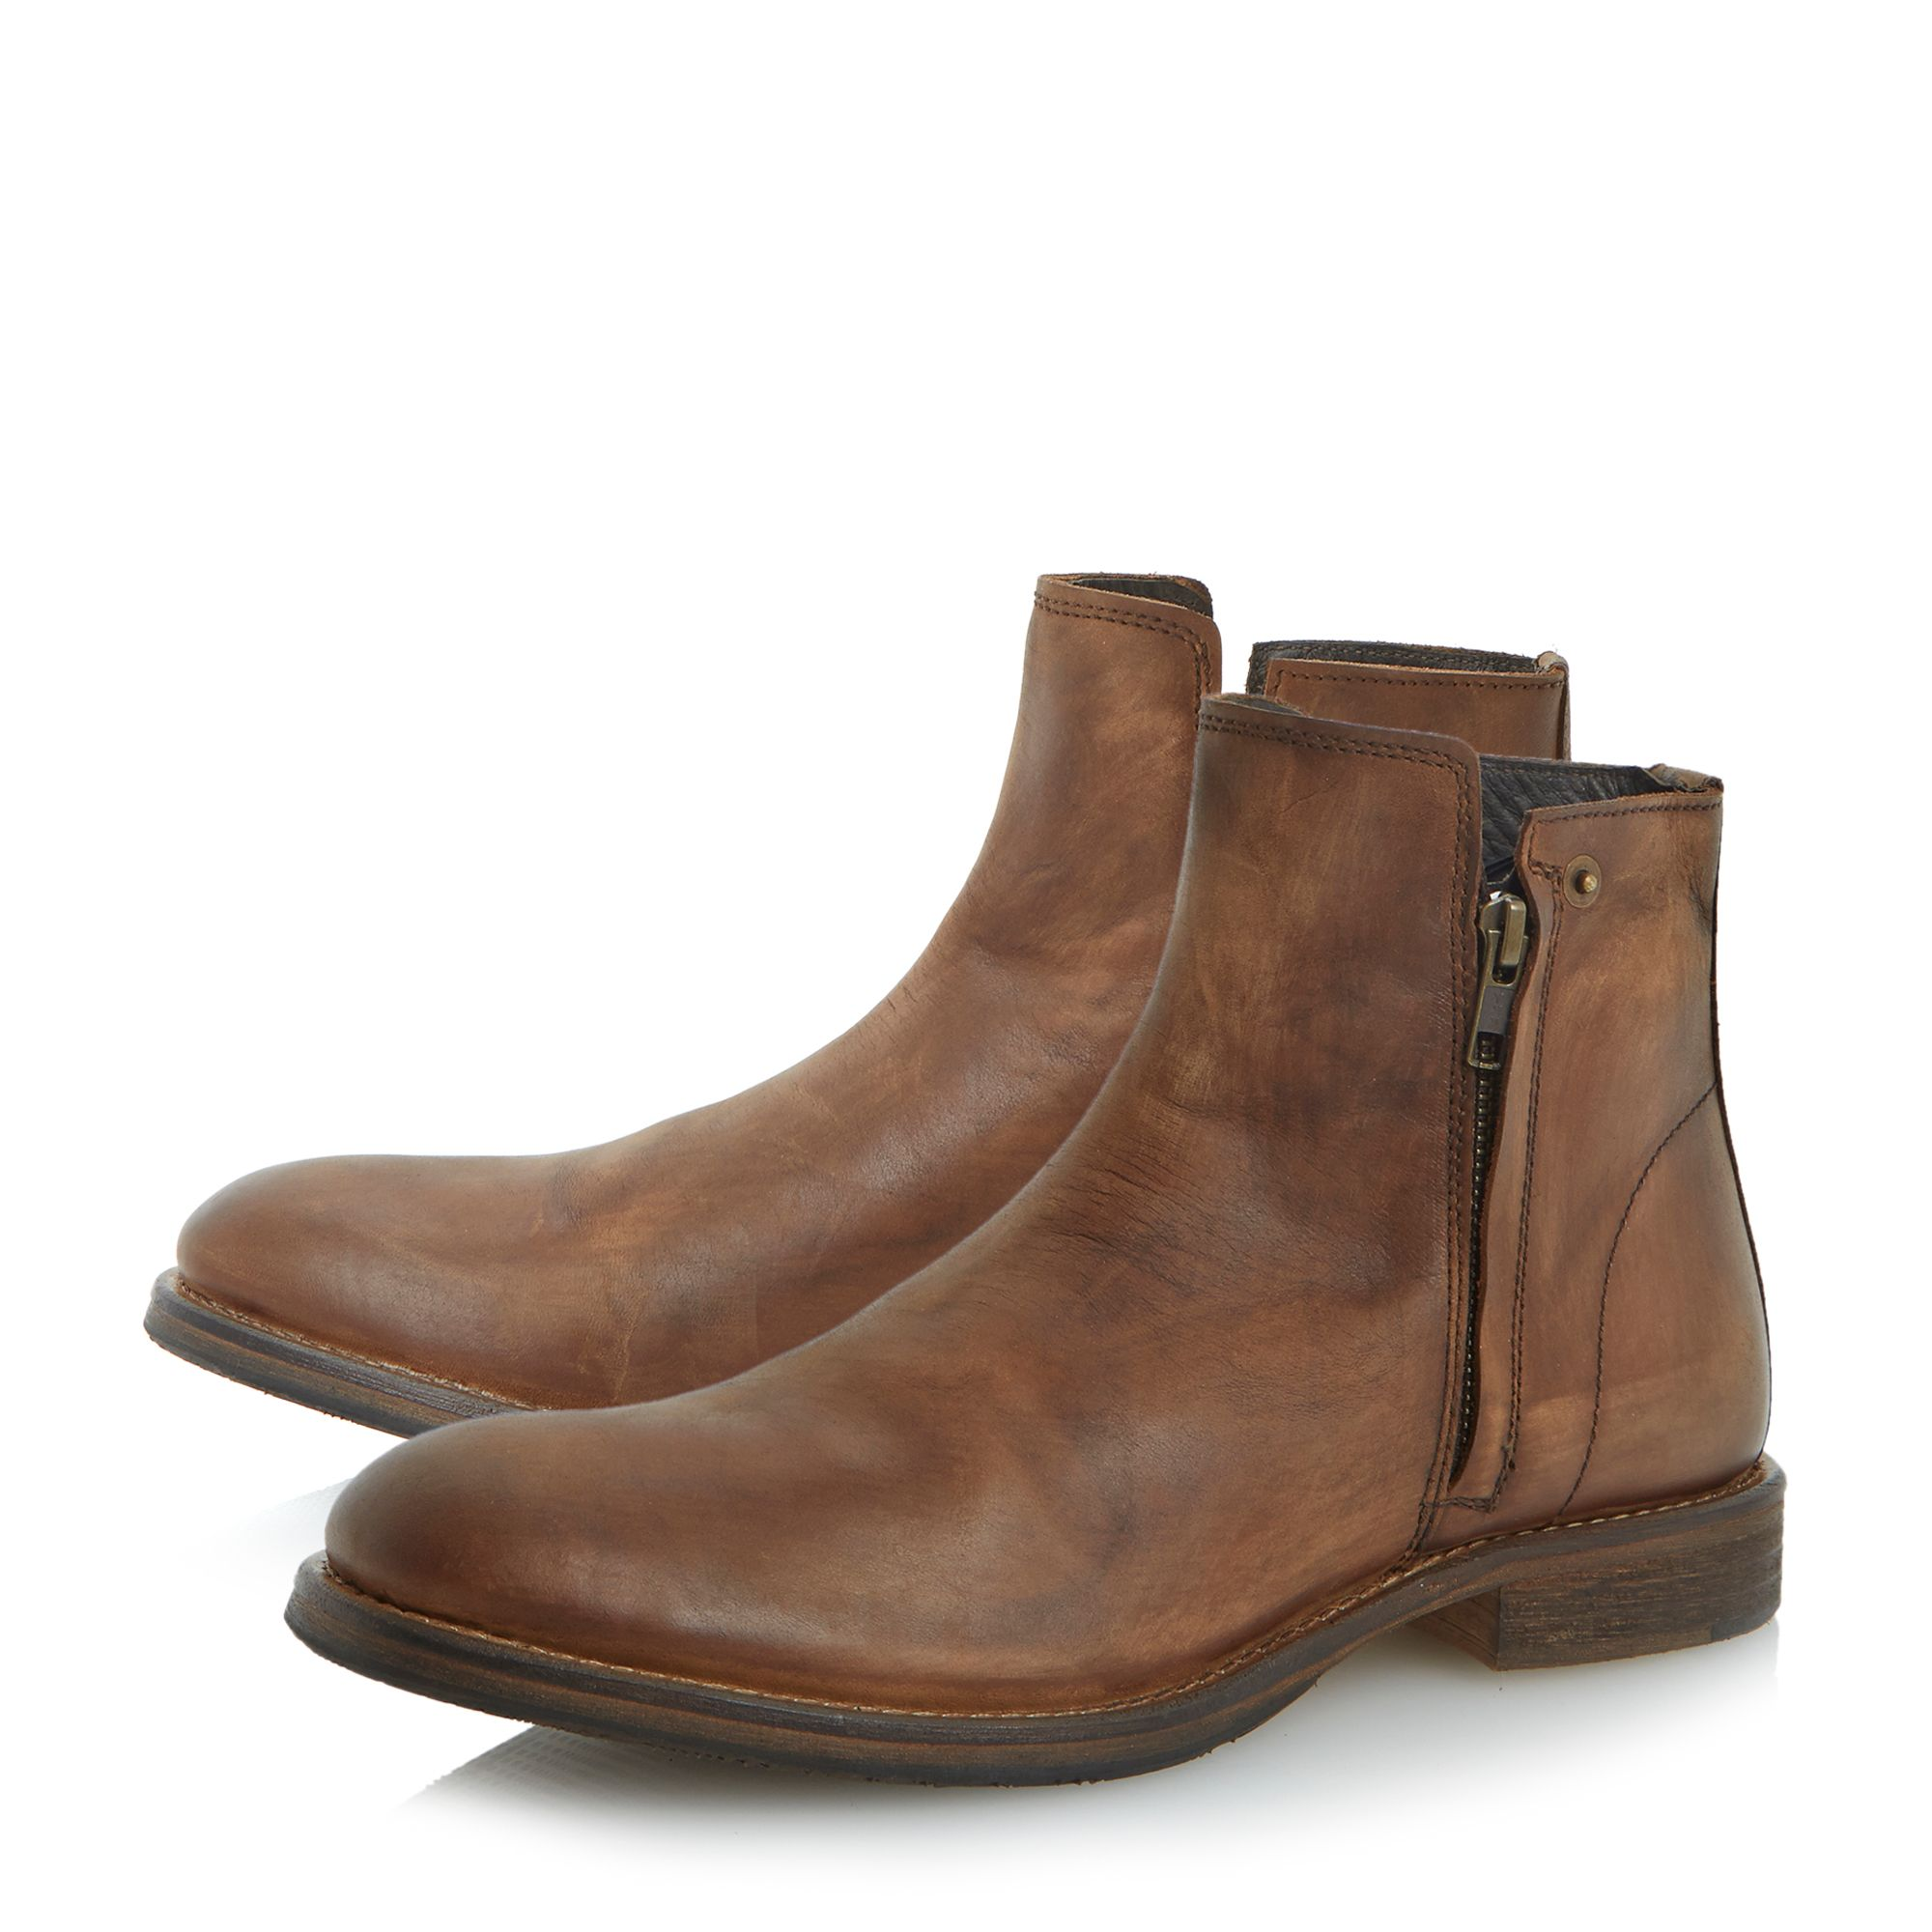 Campus doublezip washed look boots